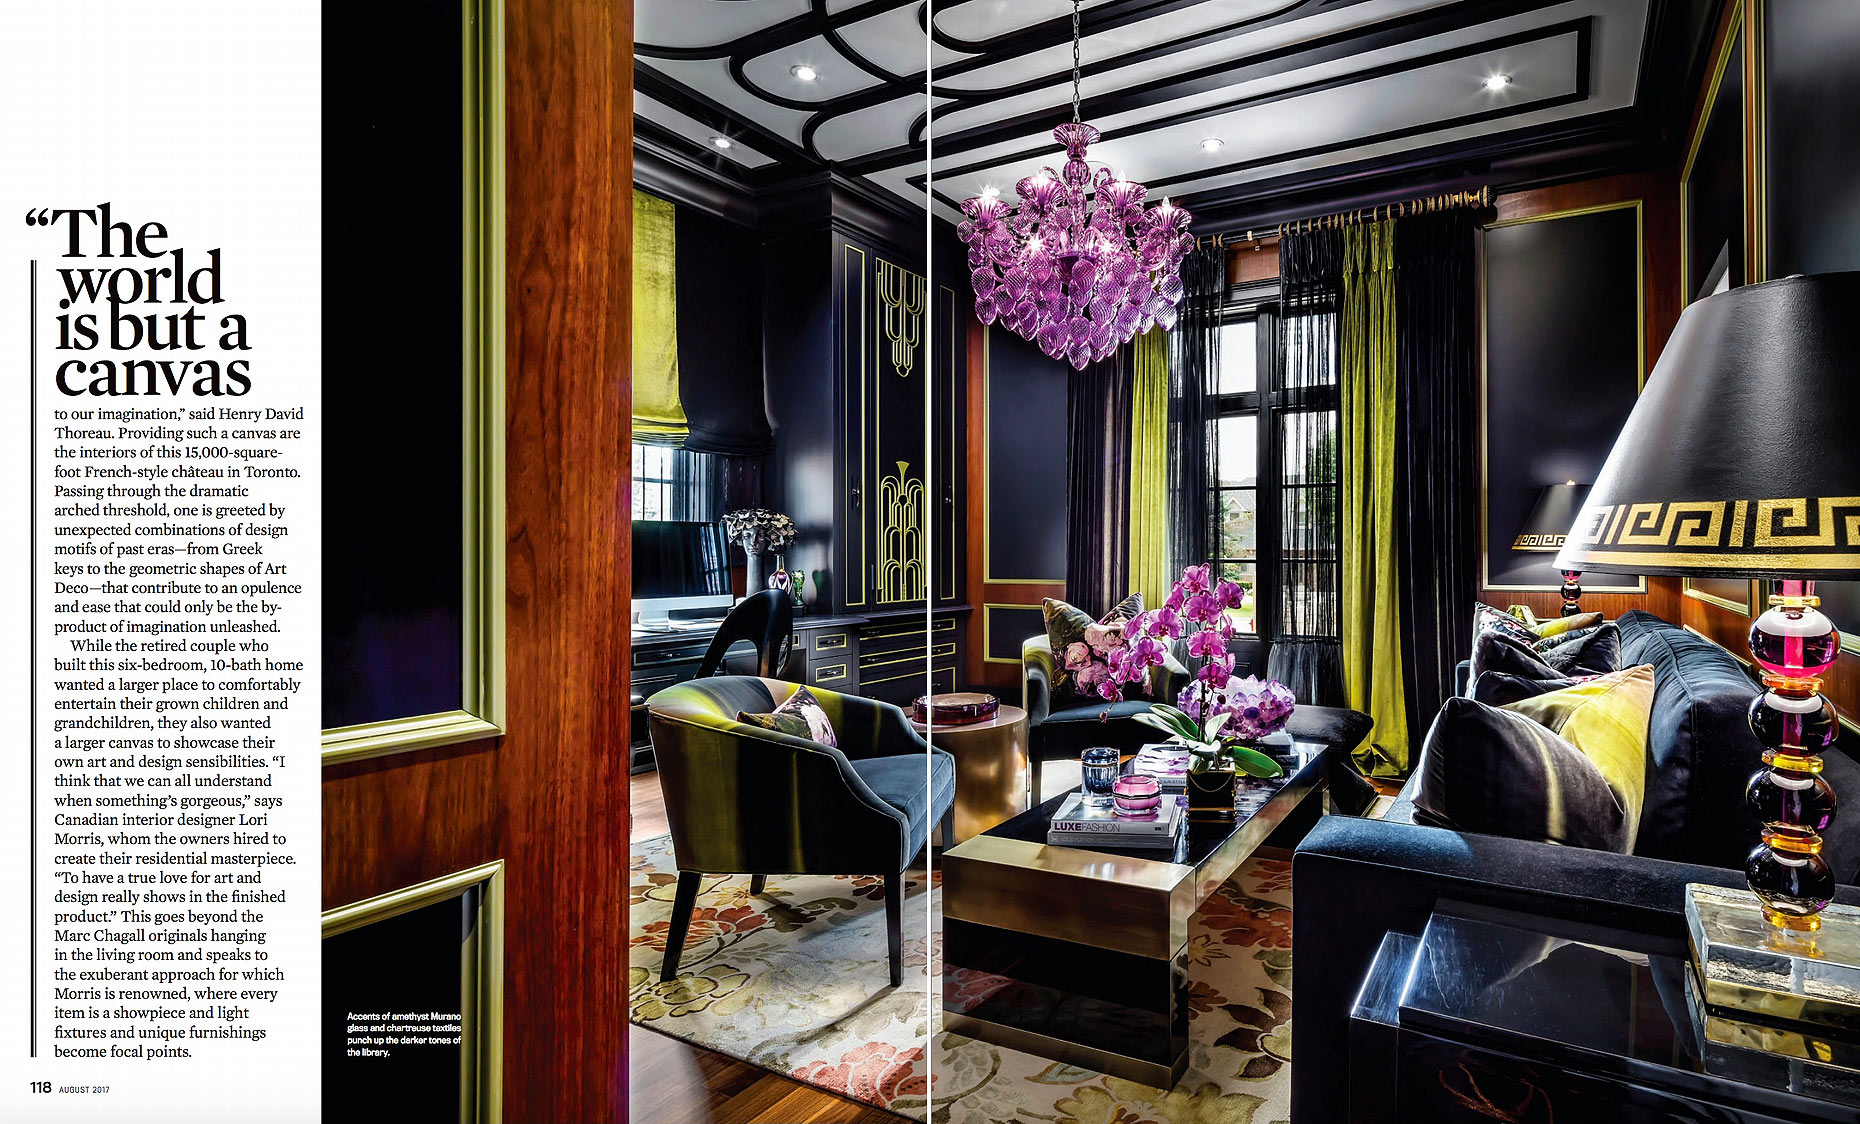 Lori_Morris_Design Robb_Report_magazine photographed by Brandon Barré